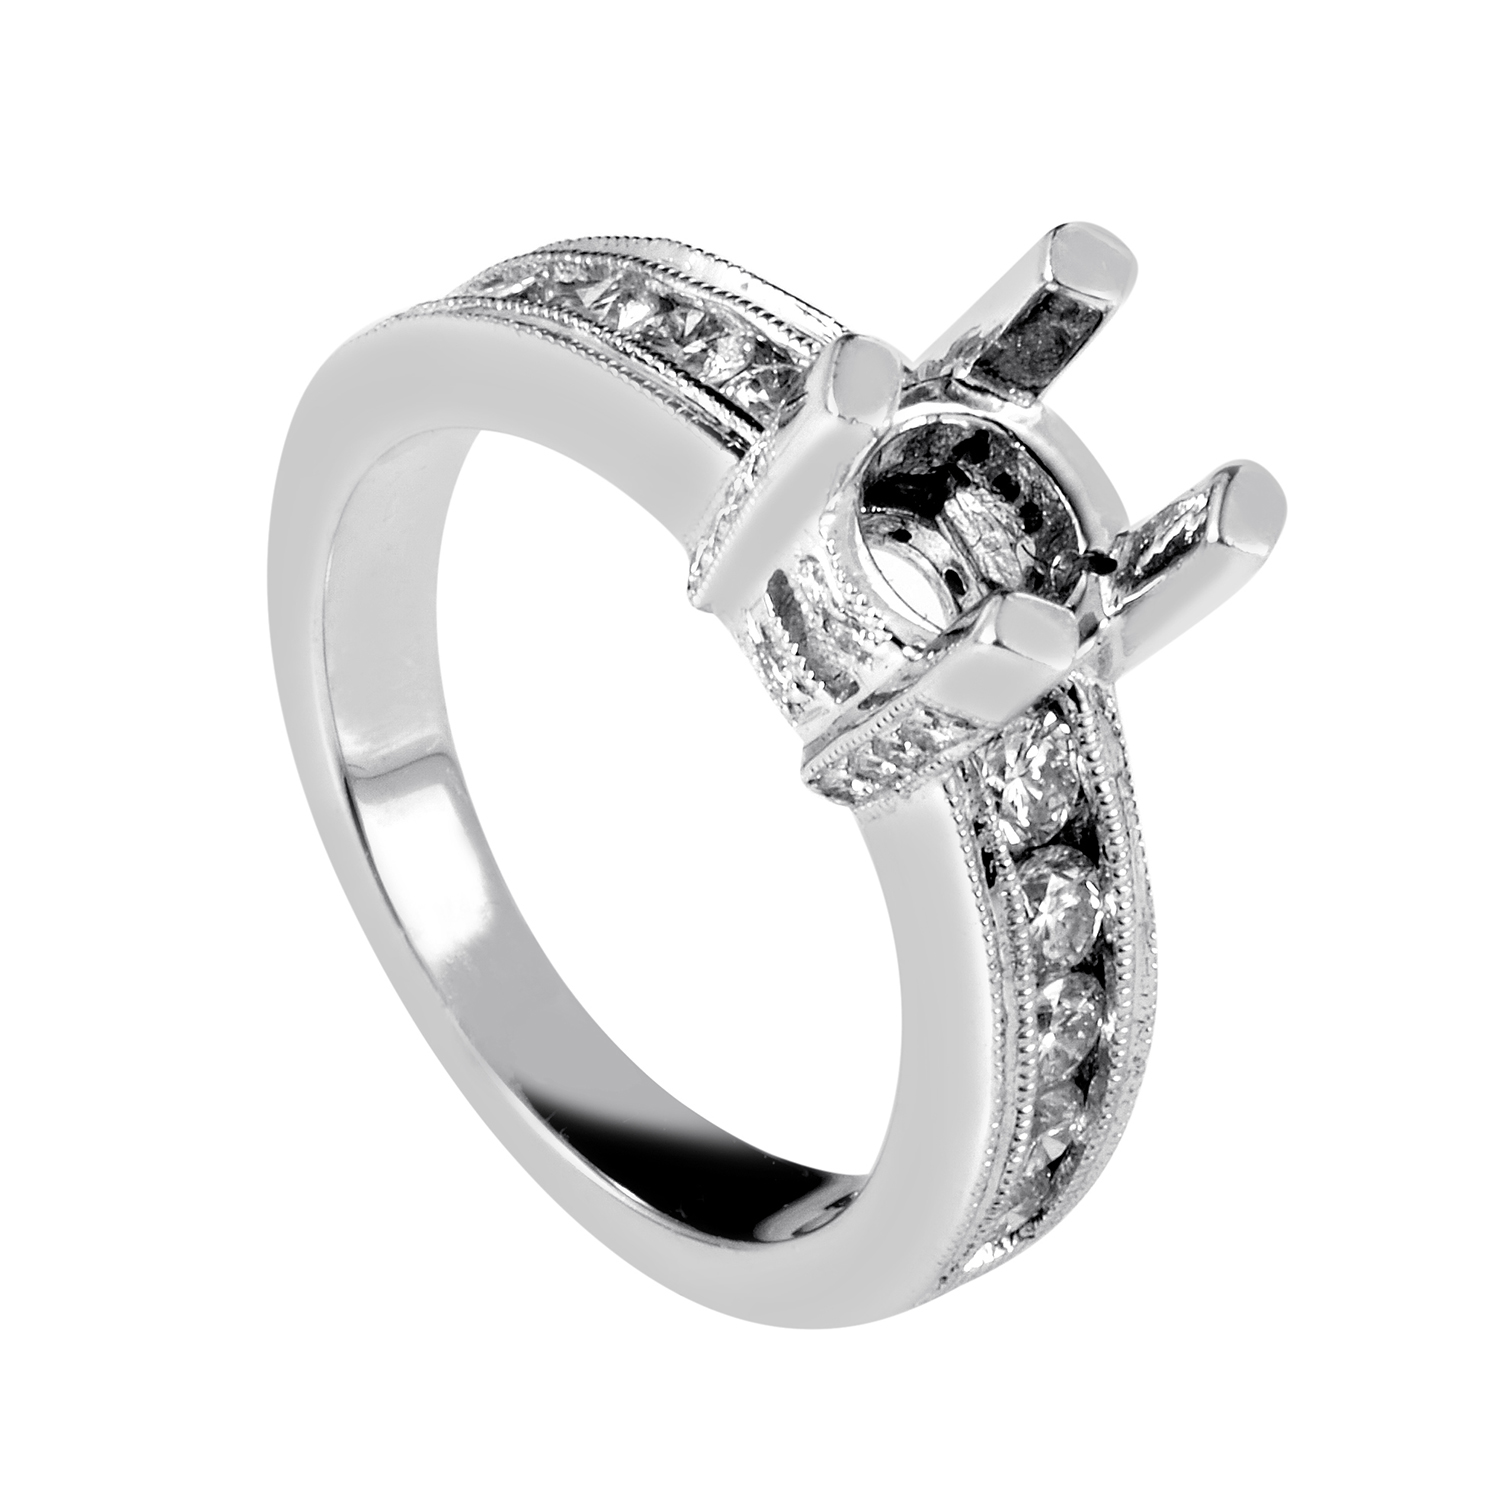 Women's 14K White Gold Diamond Engagement Ring Mounting SM4082000W